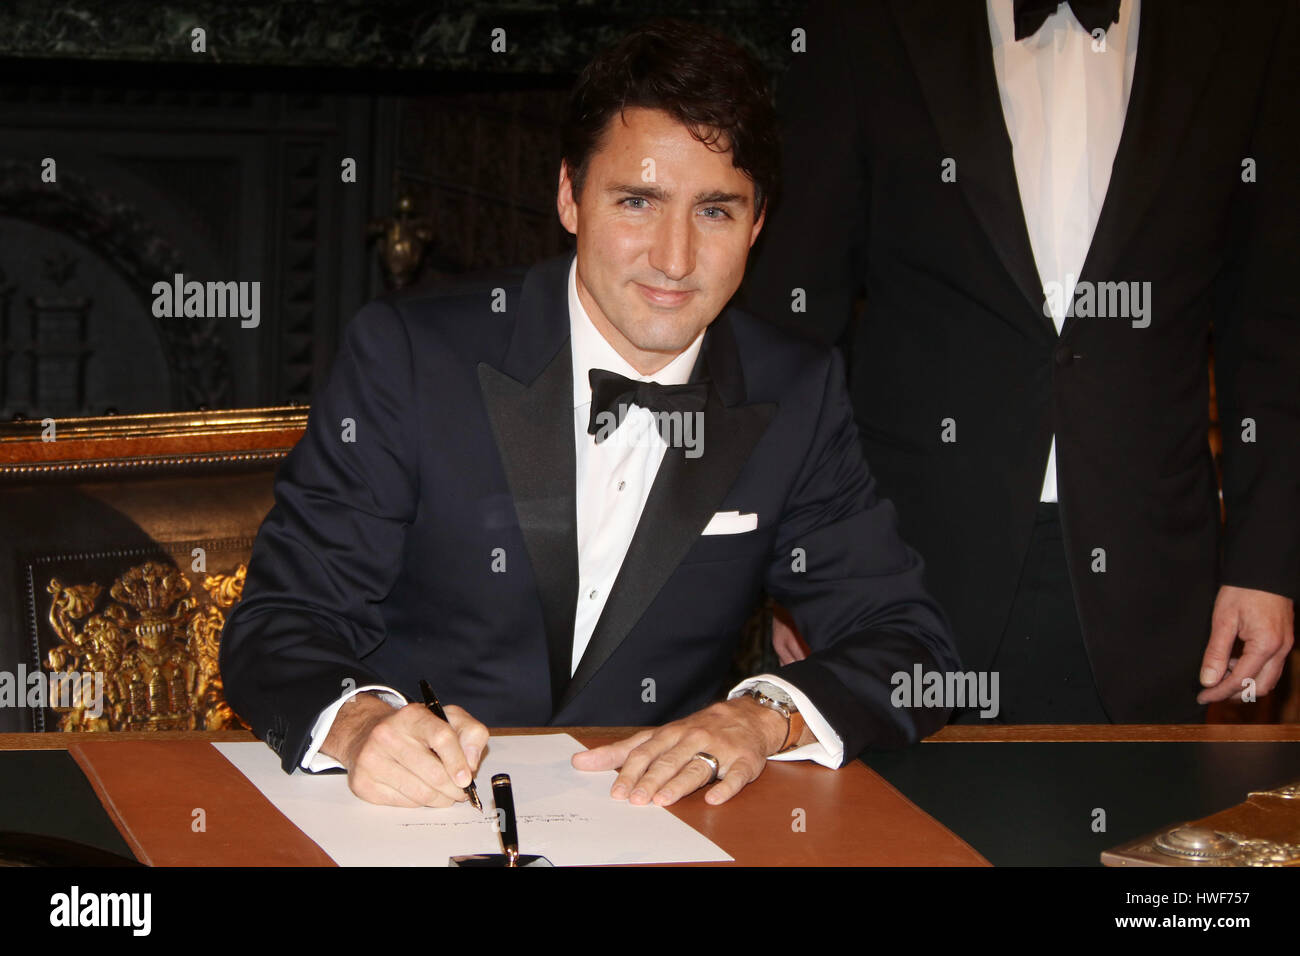 """Guest attending traditional annual Matthiae Mahl"""" (Dinner) 2017  Featuring: kanadischer Premierminister Justin Trudeau Stock Photo"""